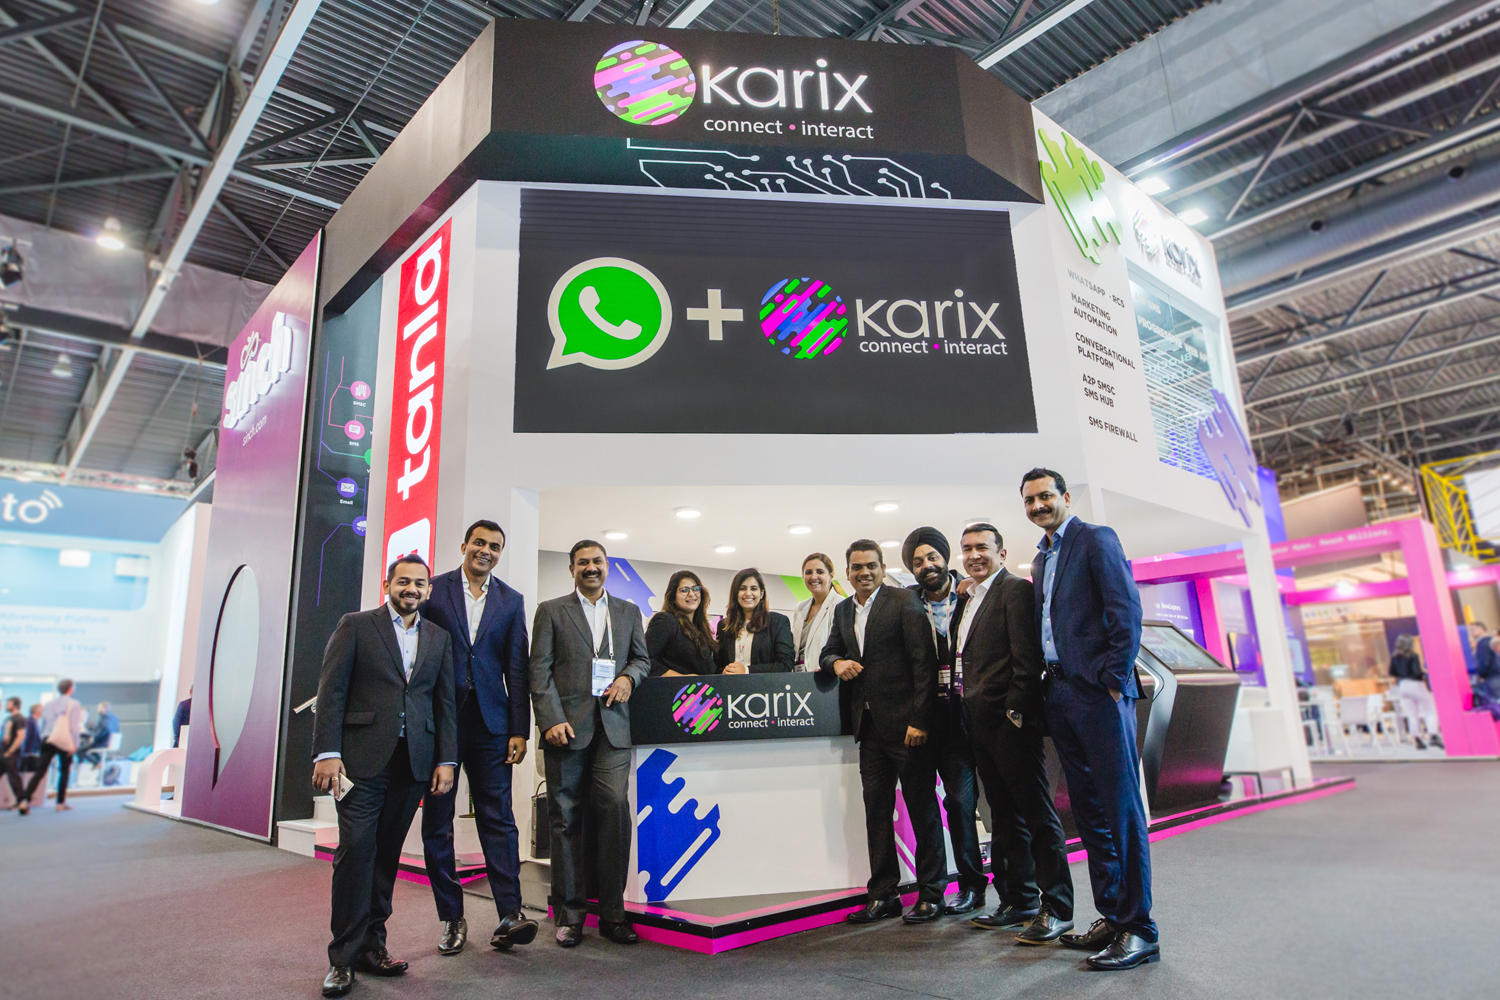 Highlights From Mobile World Congress 2019